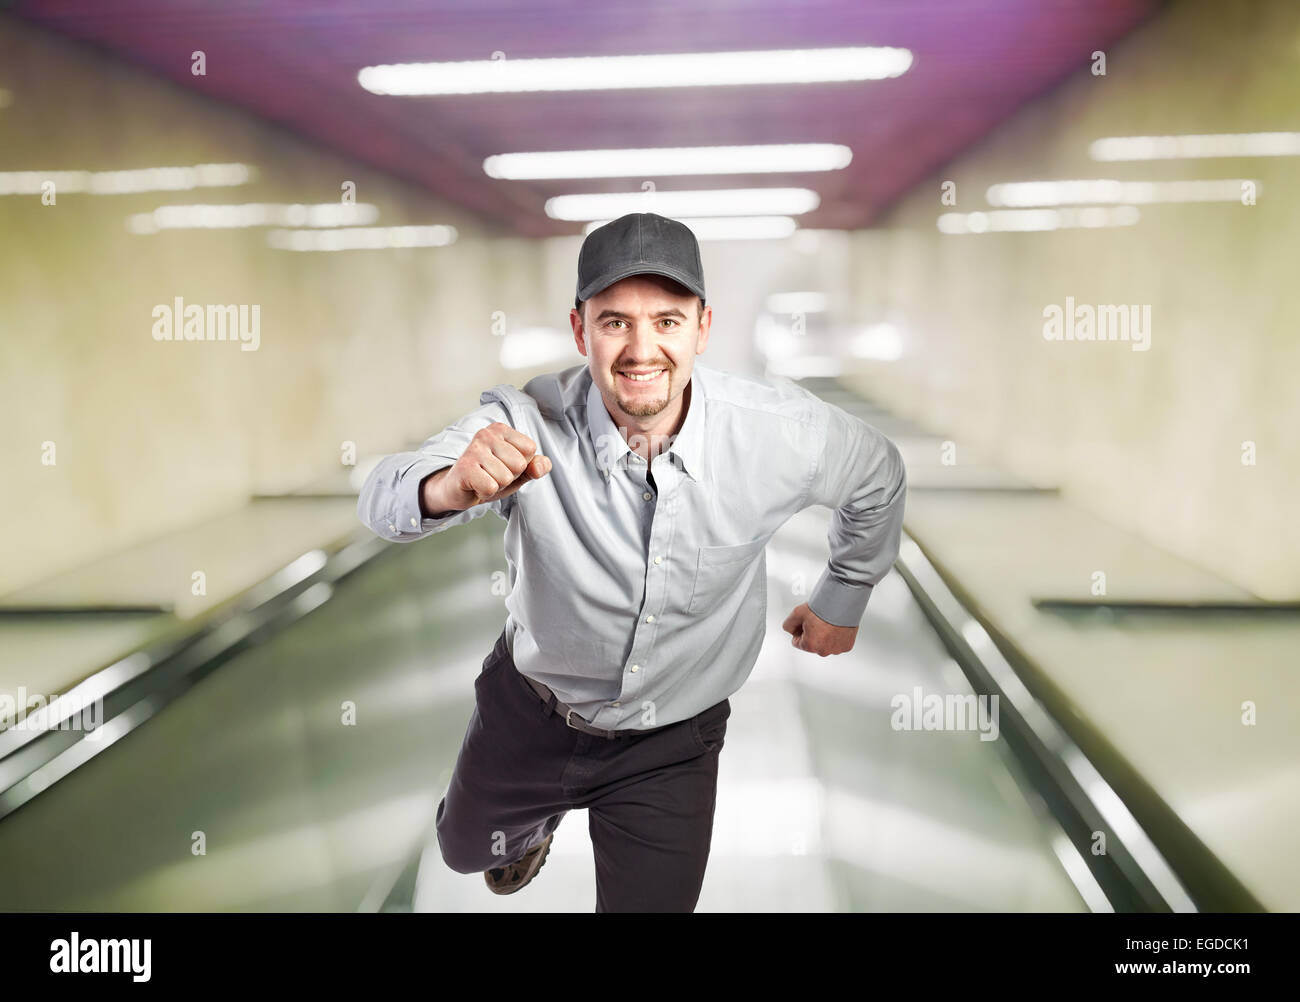 running manual worker and escalator background - Stock Image